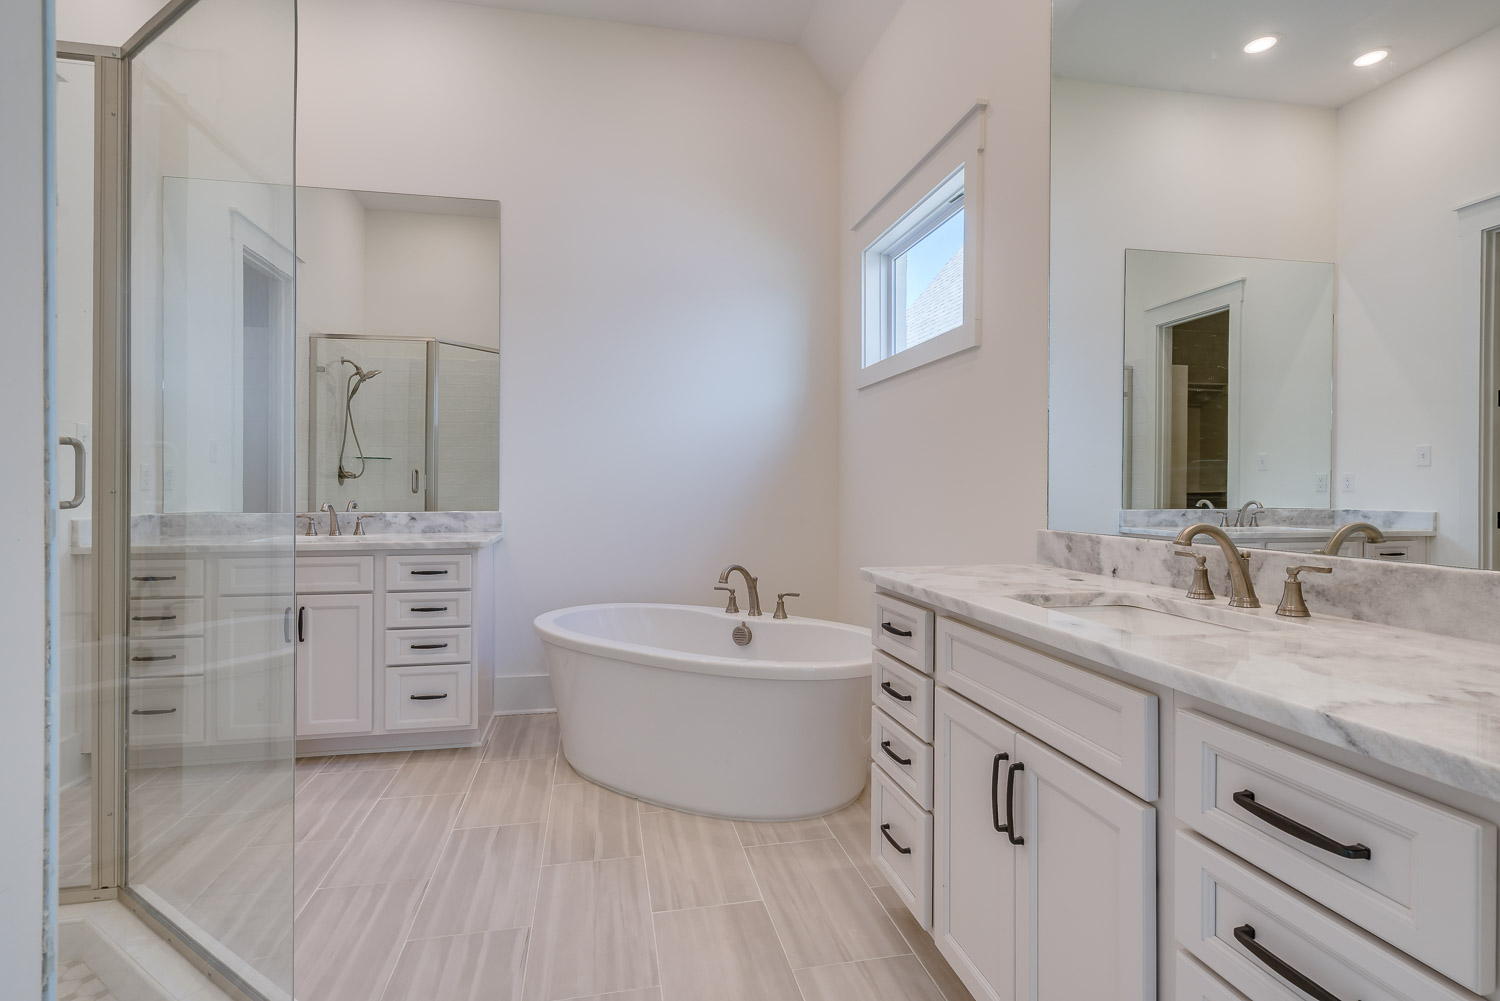 bathroom in home by OakRun Homes